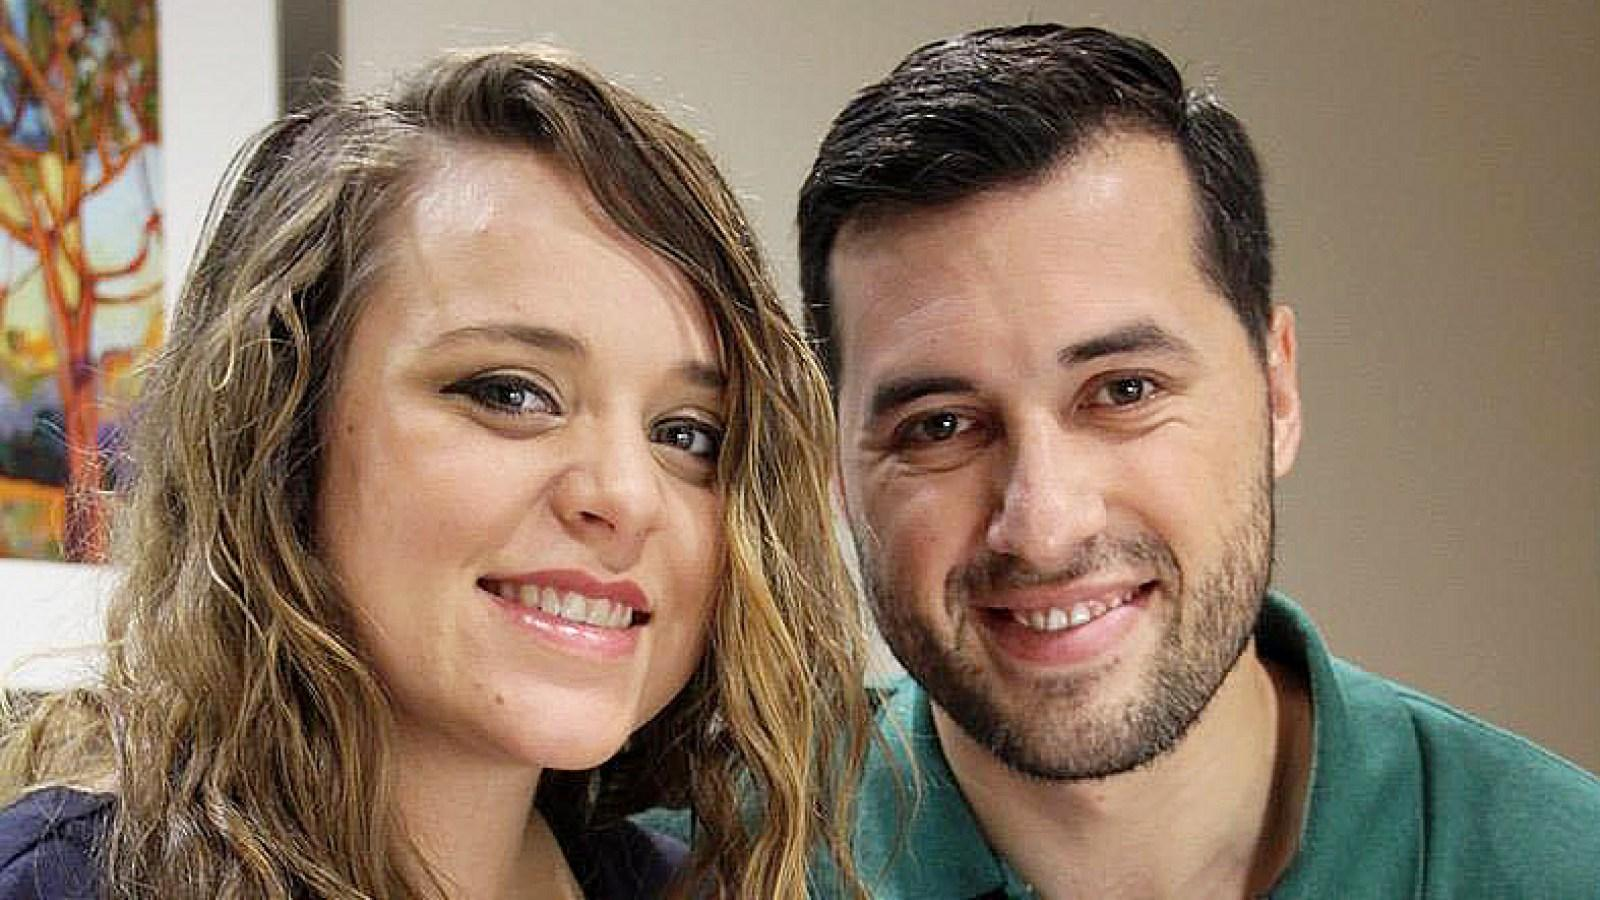 Jinger Duggar Expecting Again 6 Months After Welcoming Baby Felicity? - Picture Sparks Rumors!